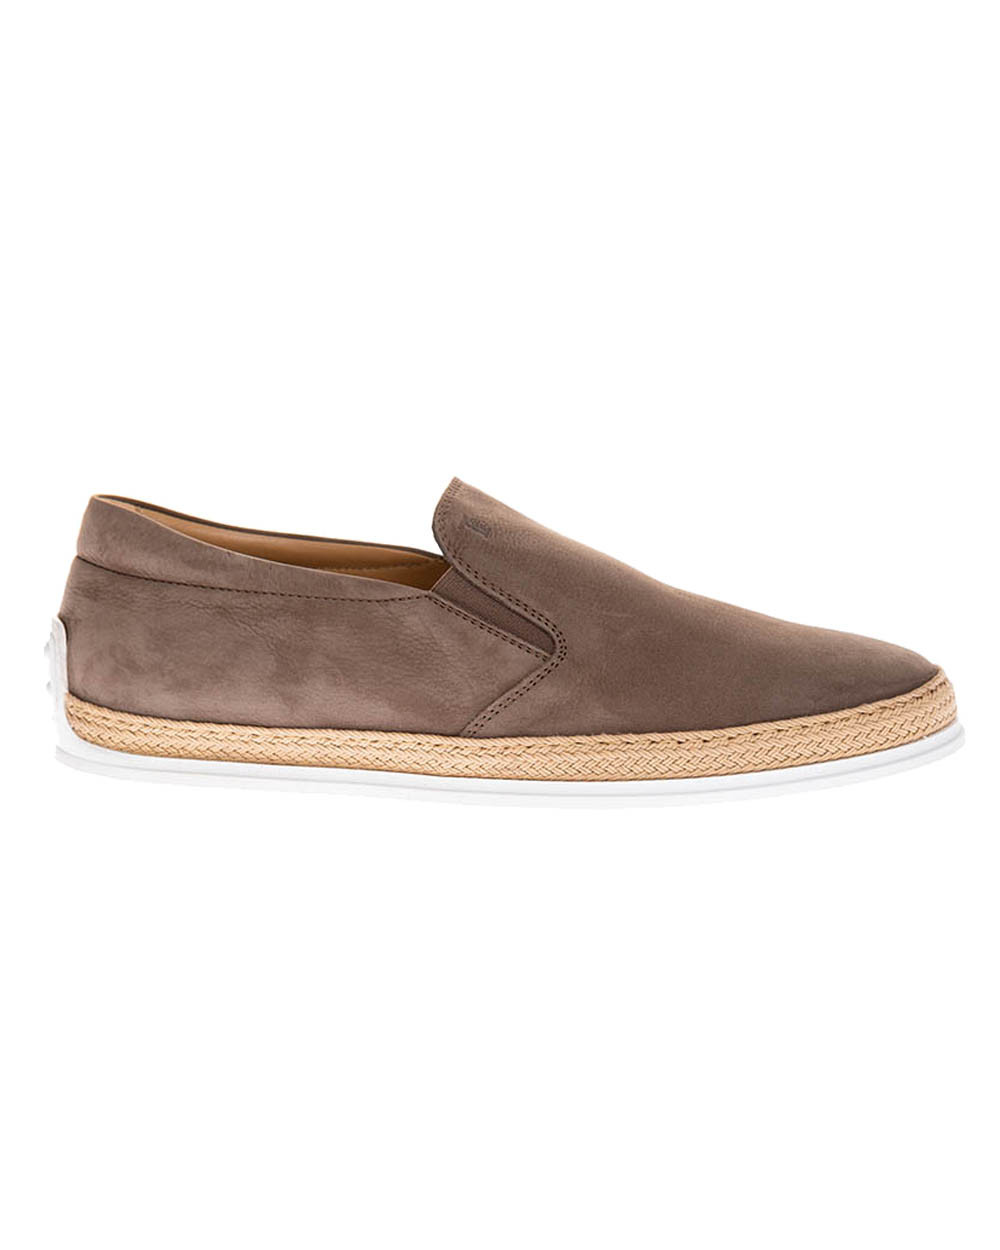 """Pantofola"" Nubuck leather slip-ons with weaving and elastic"